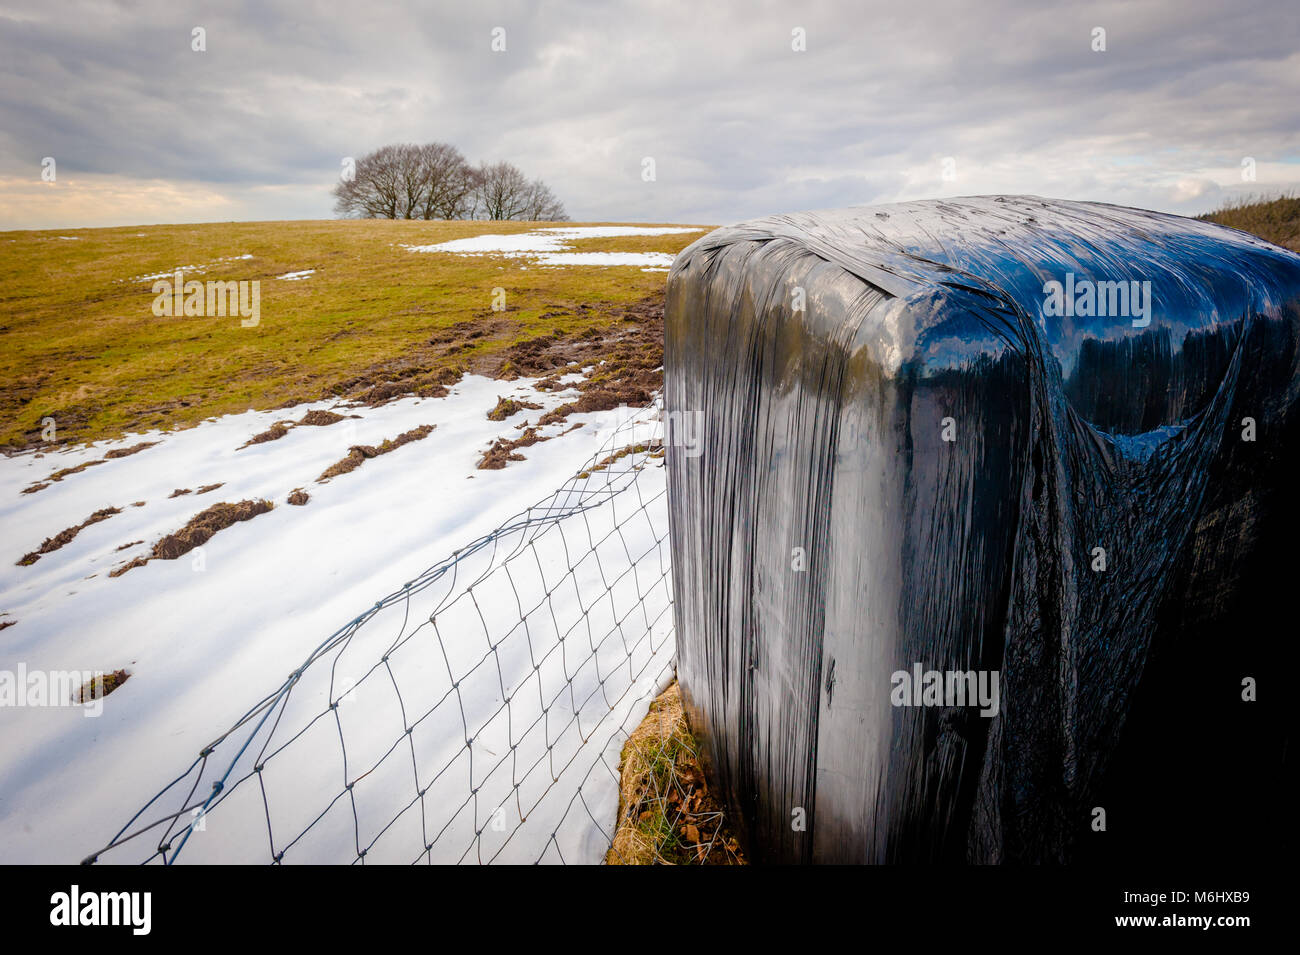 animal-feed-in-winter-south-wales-2018-M